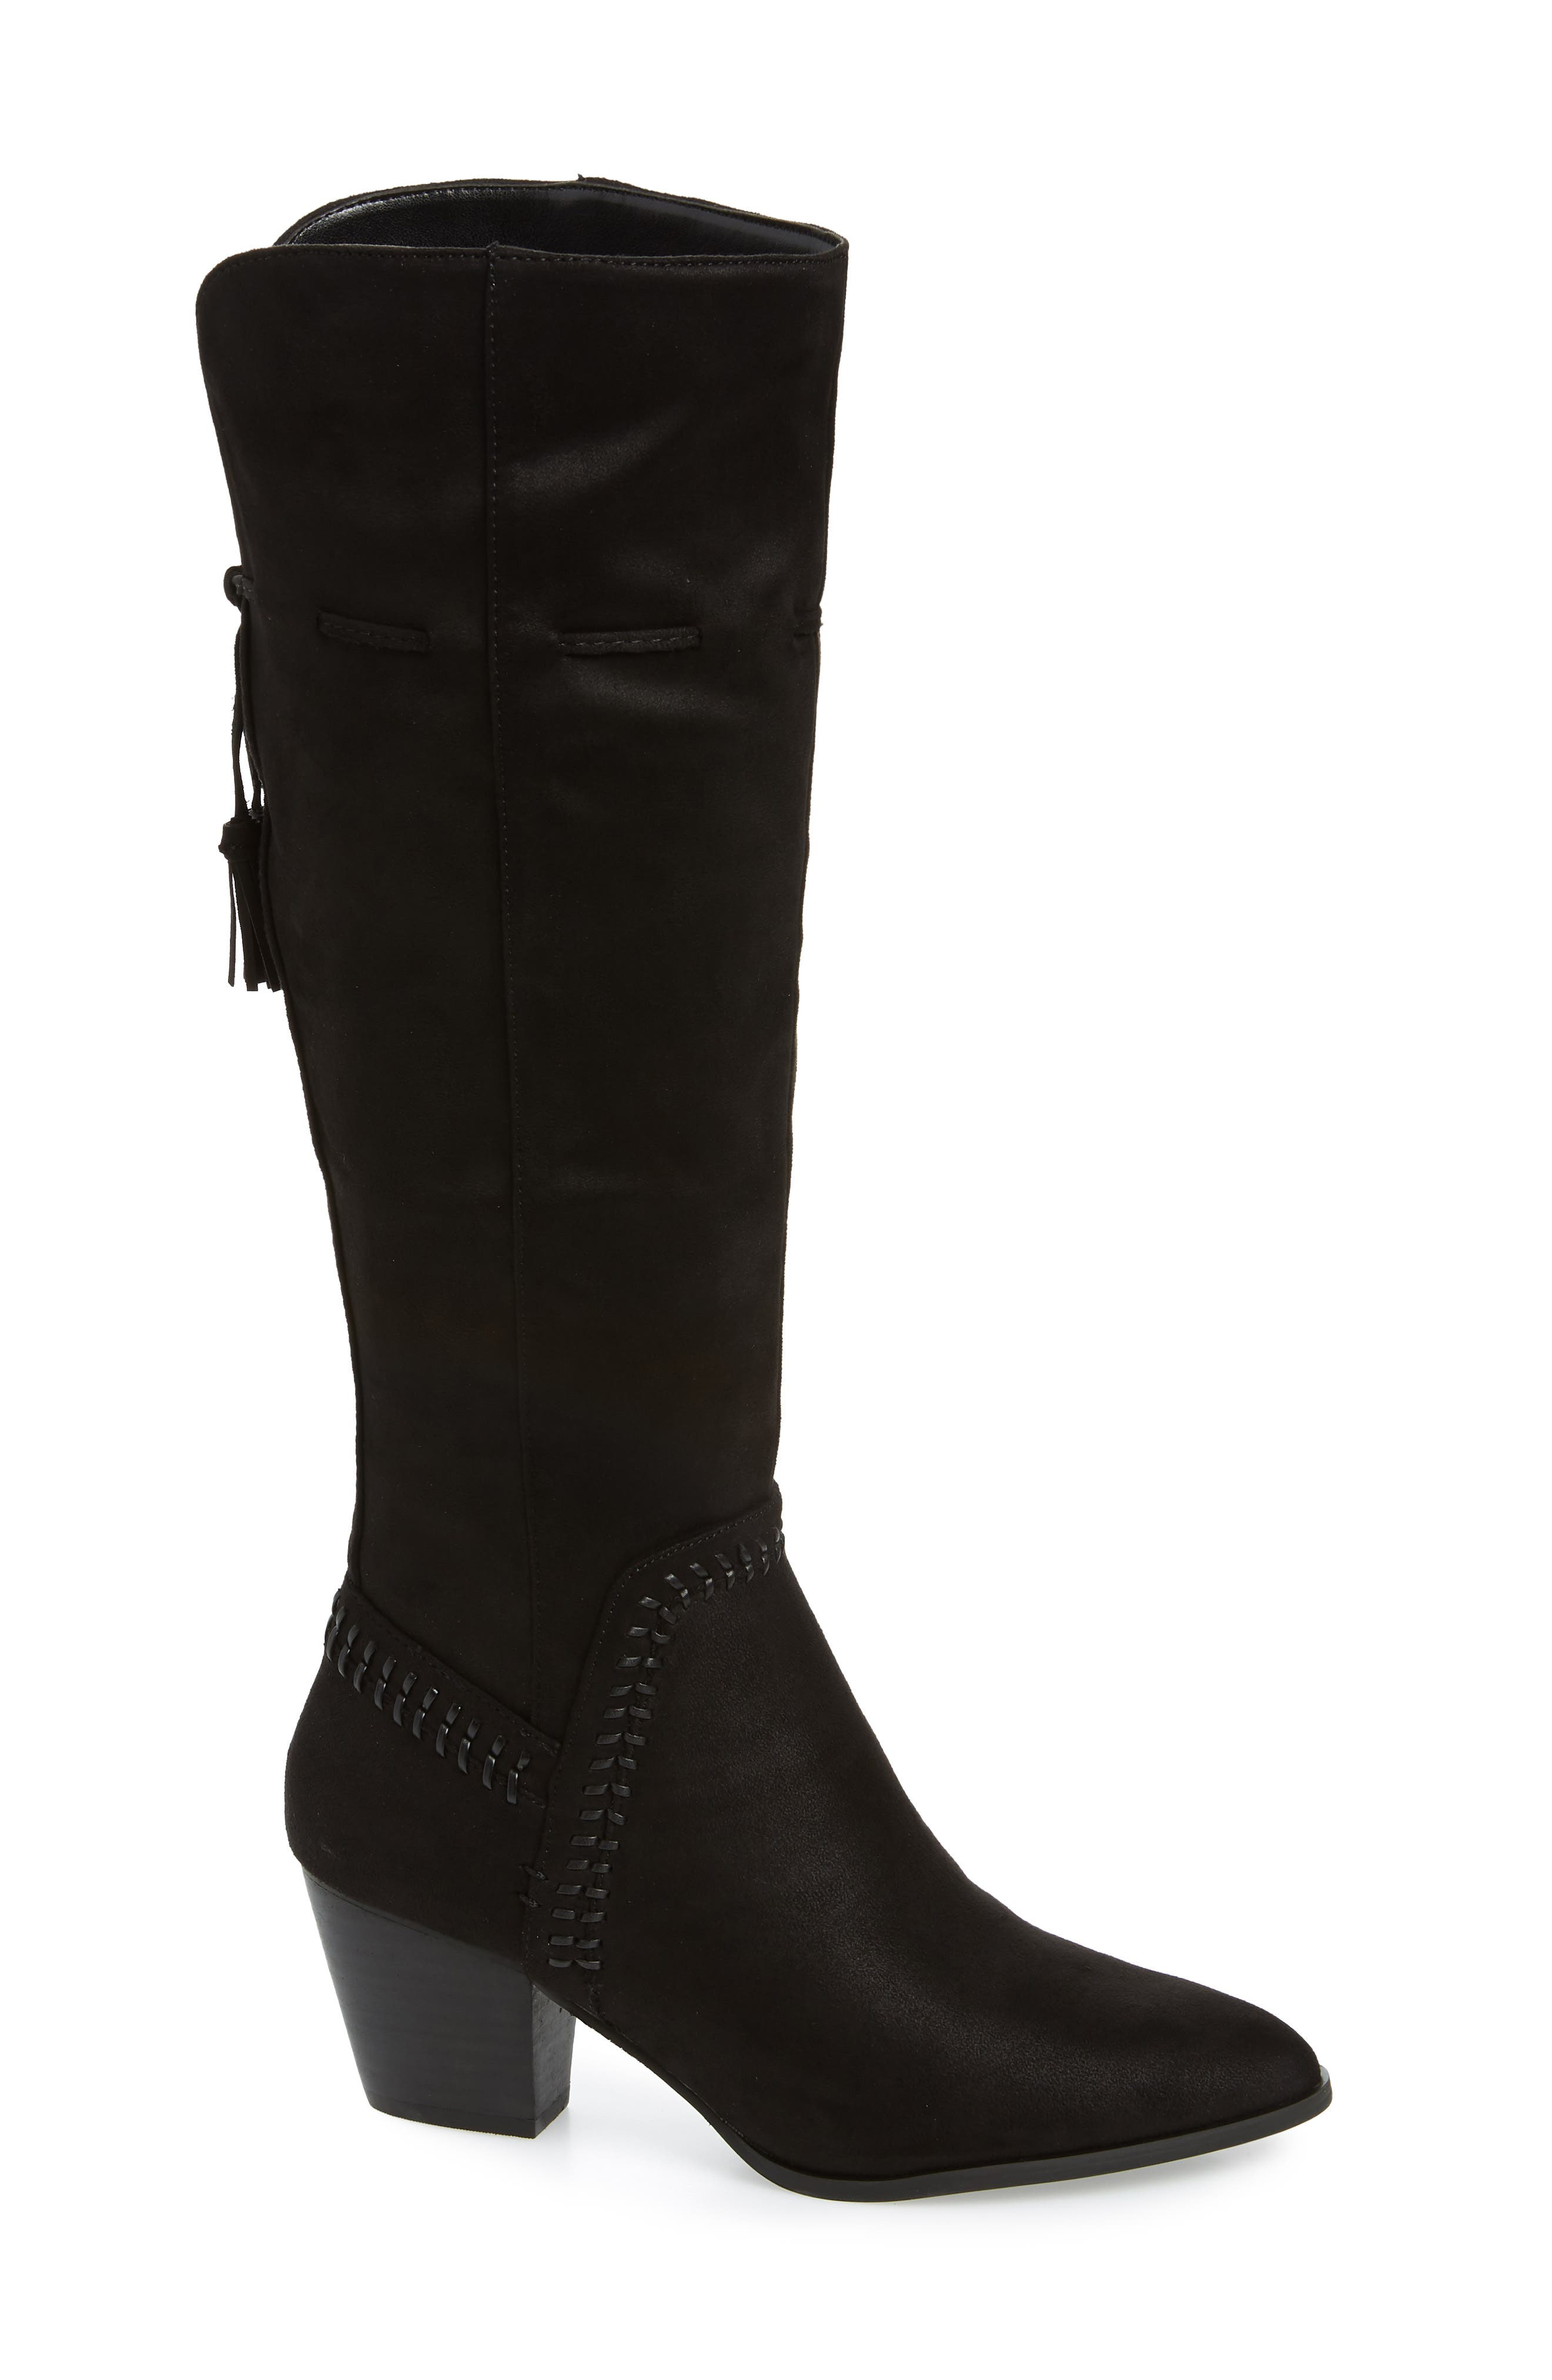 Bella Vita Eleanor Ii Knee High Boot, Black